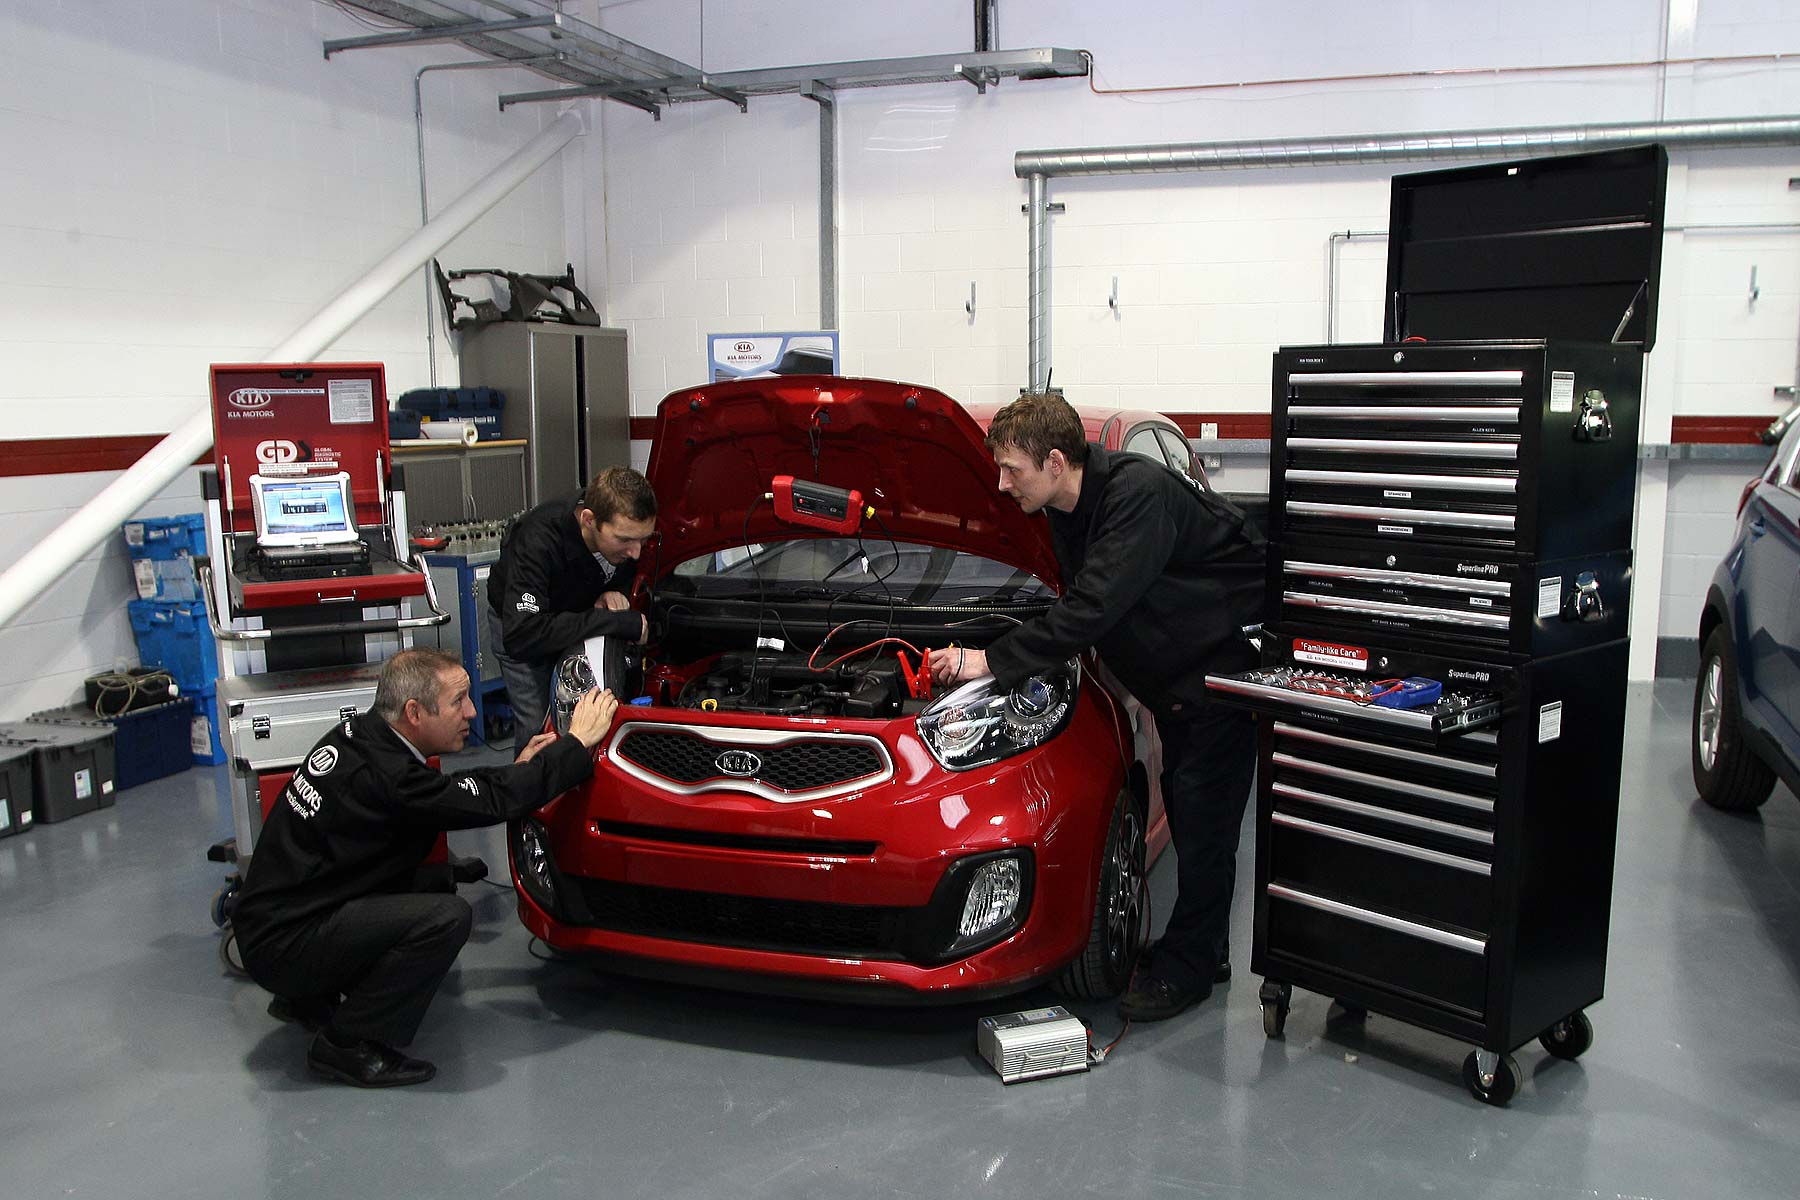 Kia car servicing